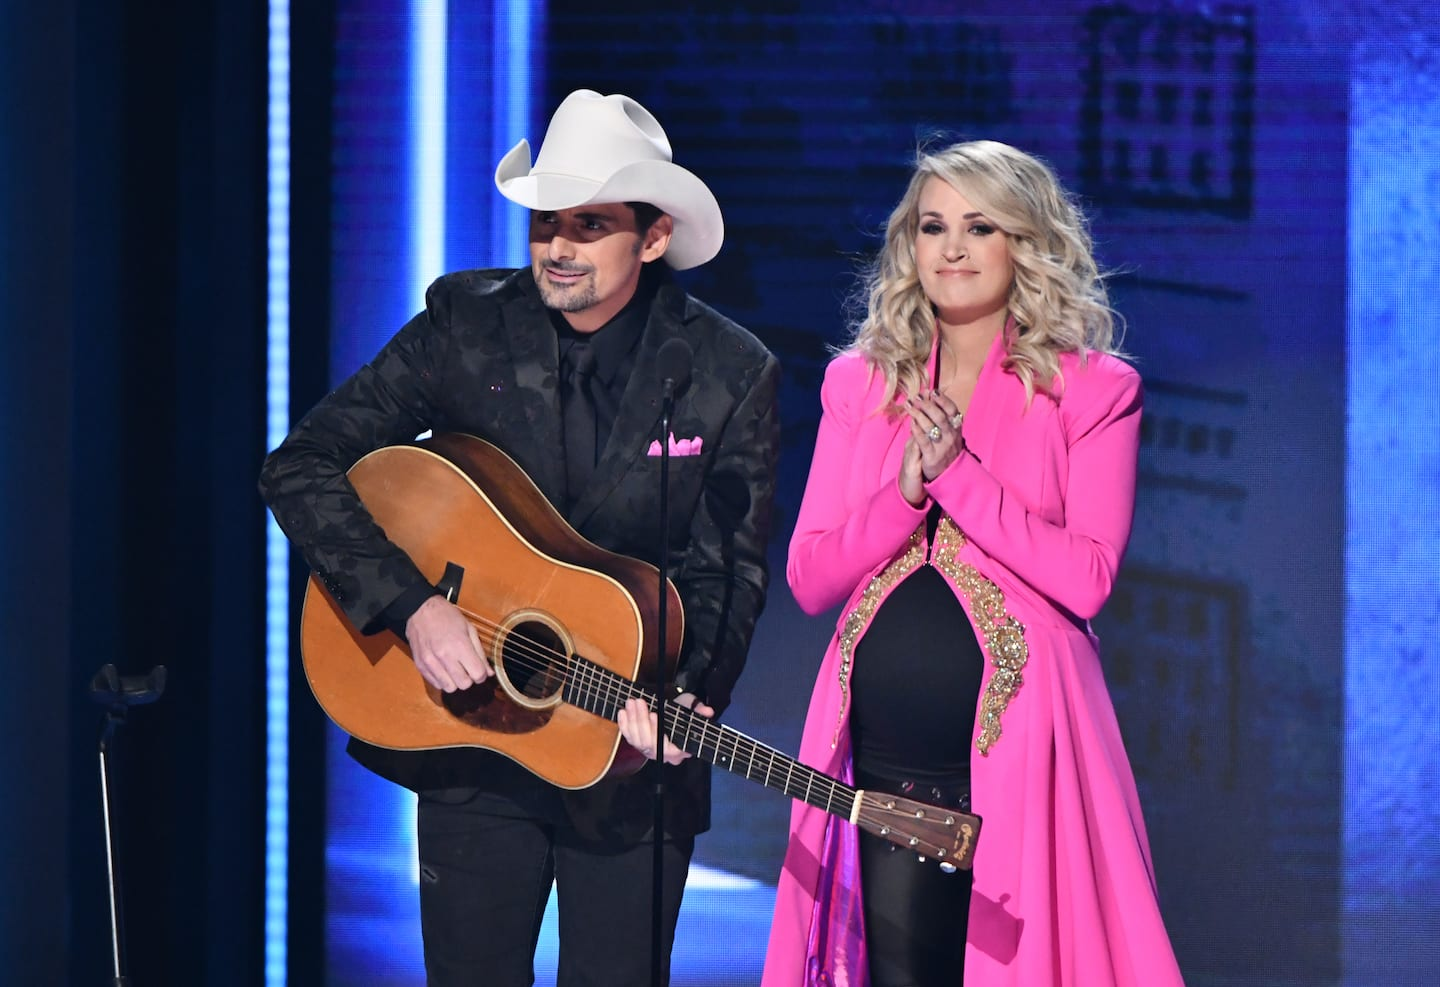 CMA Awards: 10 things you missed, from Keith Urban's big win to the awkward monologue jokes